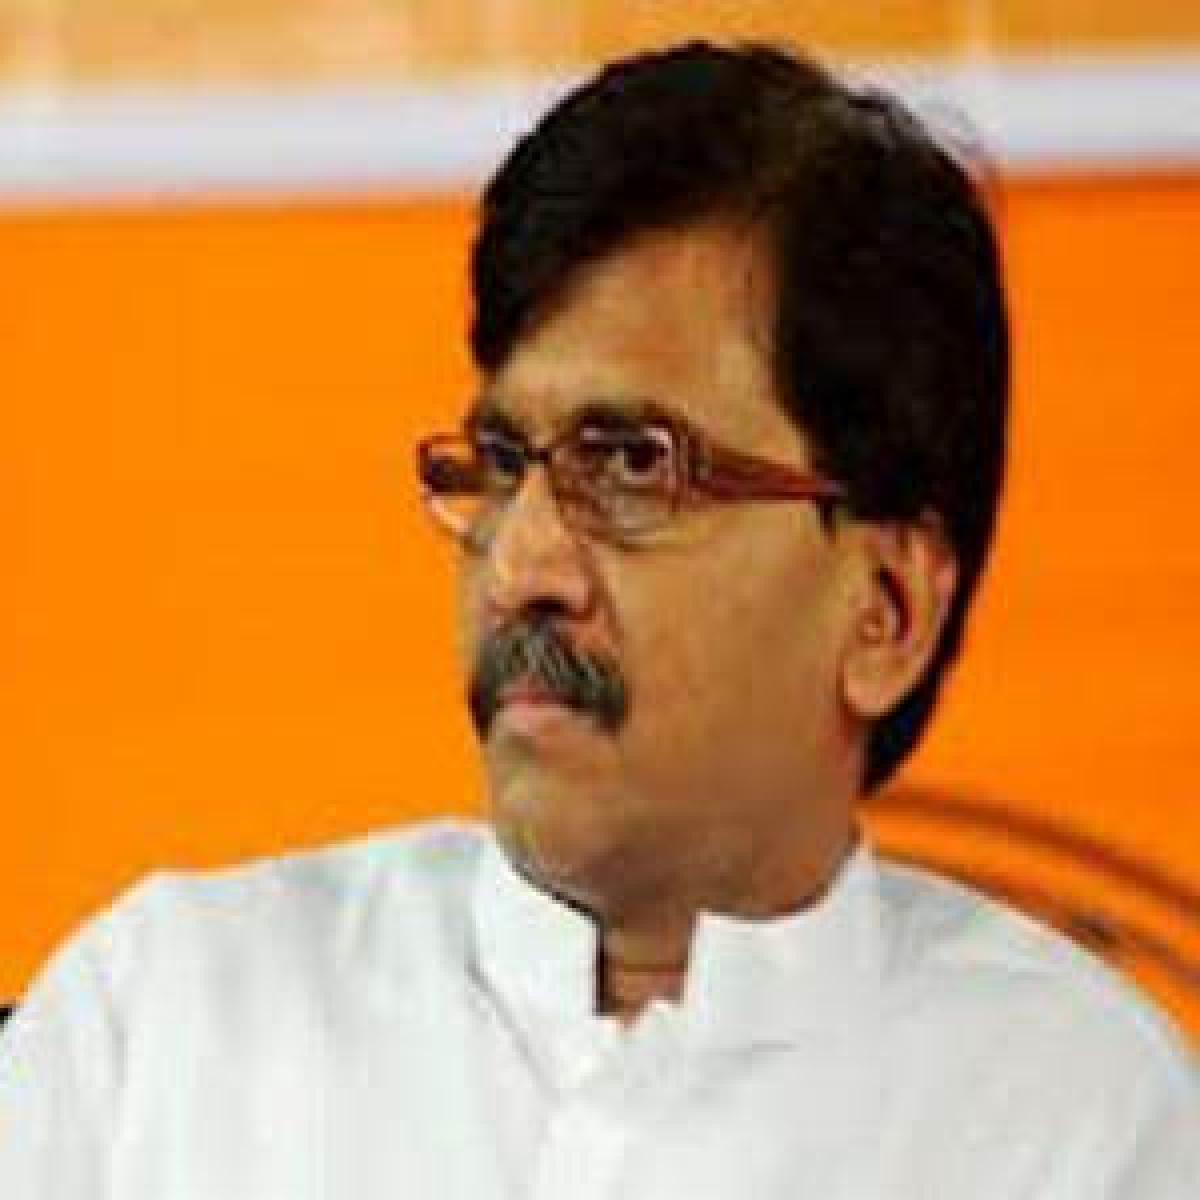 BJP needs introspection if it can't honour its word: Sanjay Raut